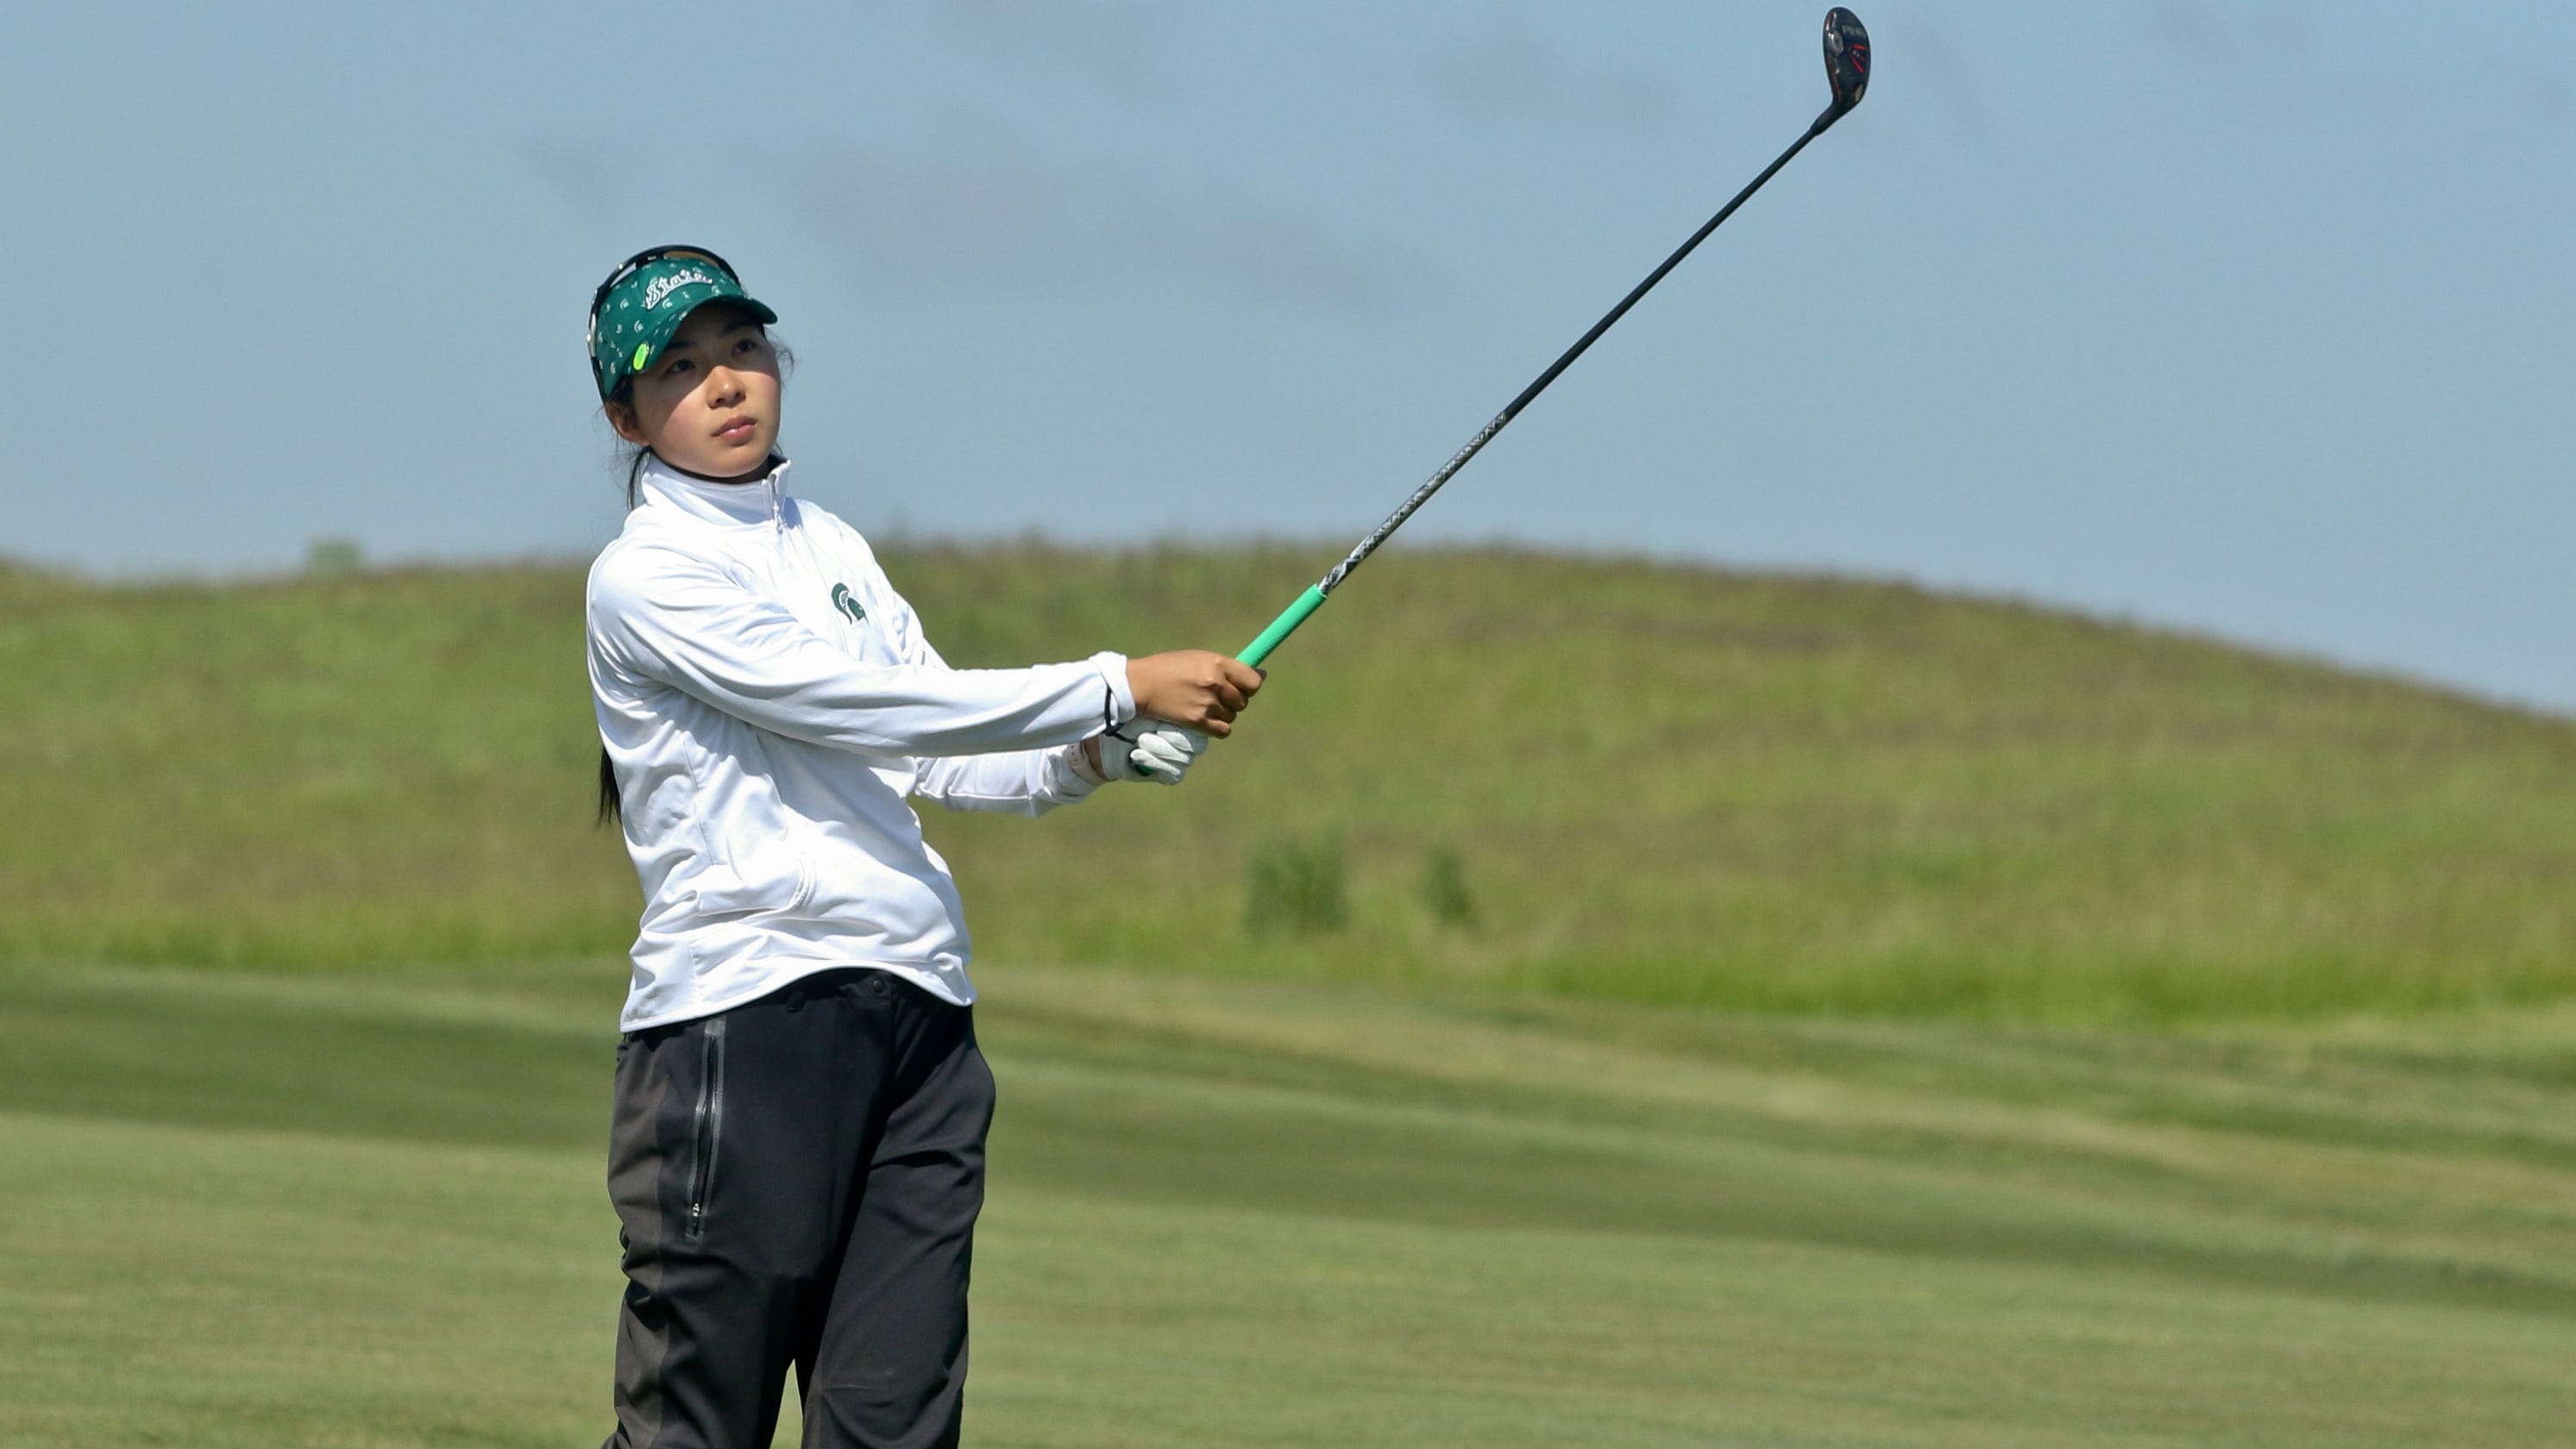 Michigan State women's golf won't fear 'big stage' at NCAA Championships